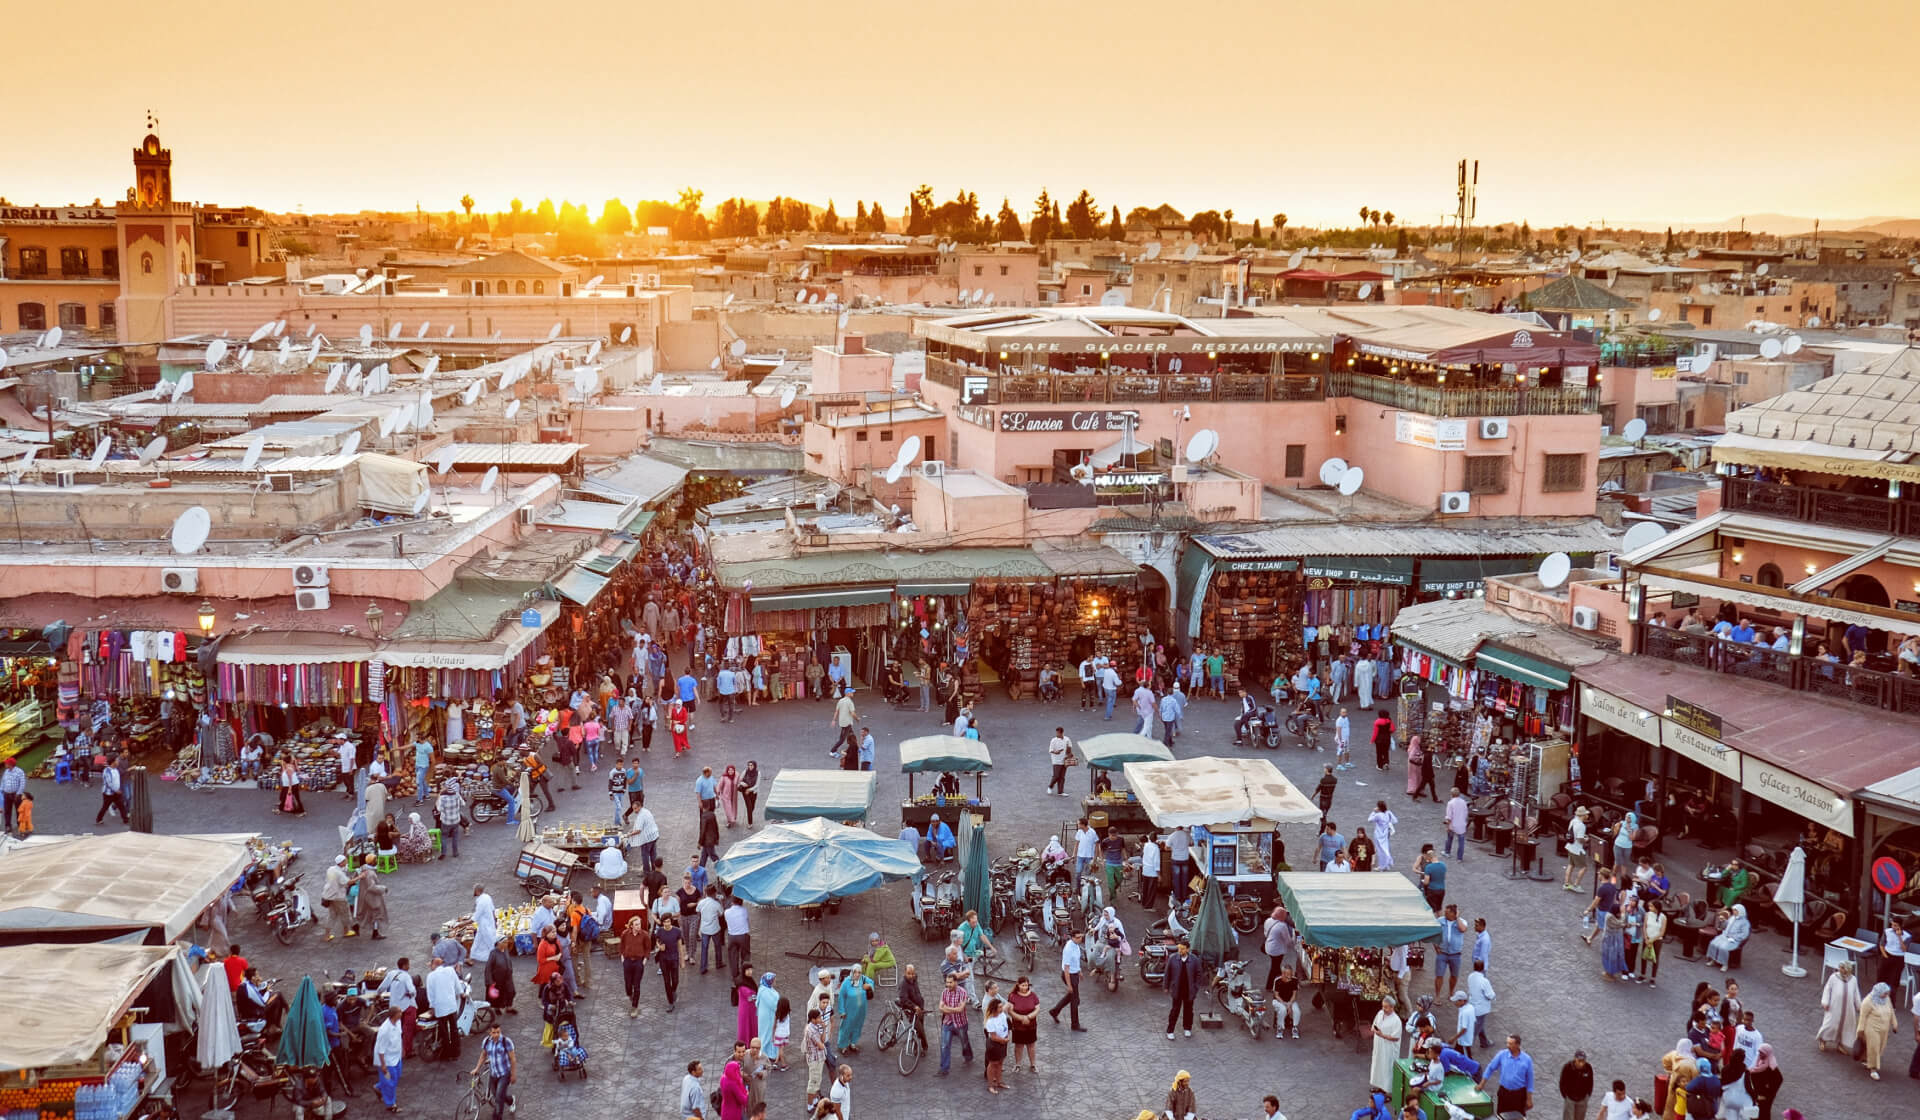 Aerial view of a crowded and chaotic souk of Marrakech, Morocco